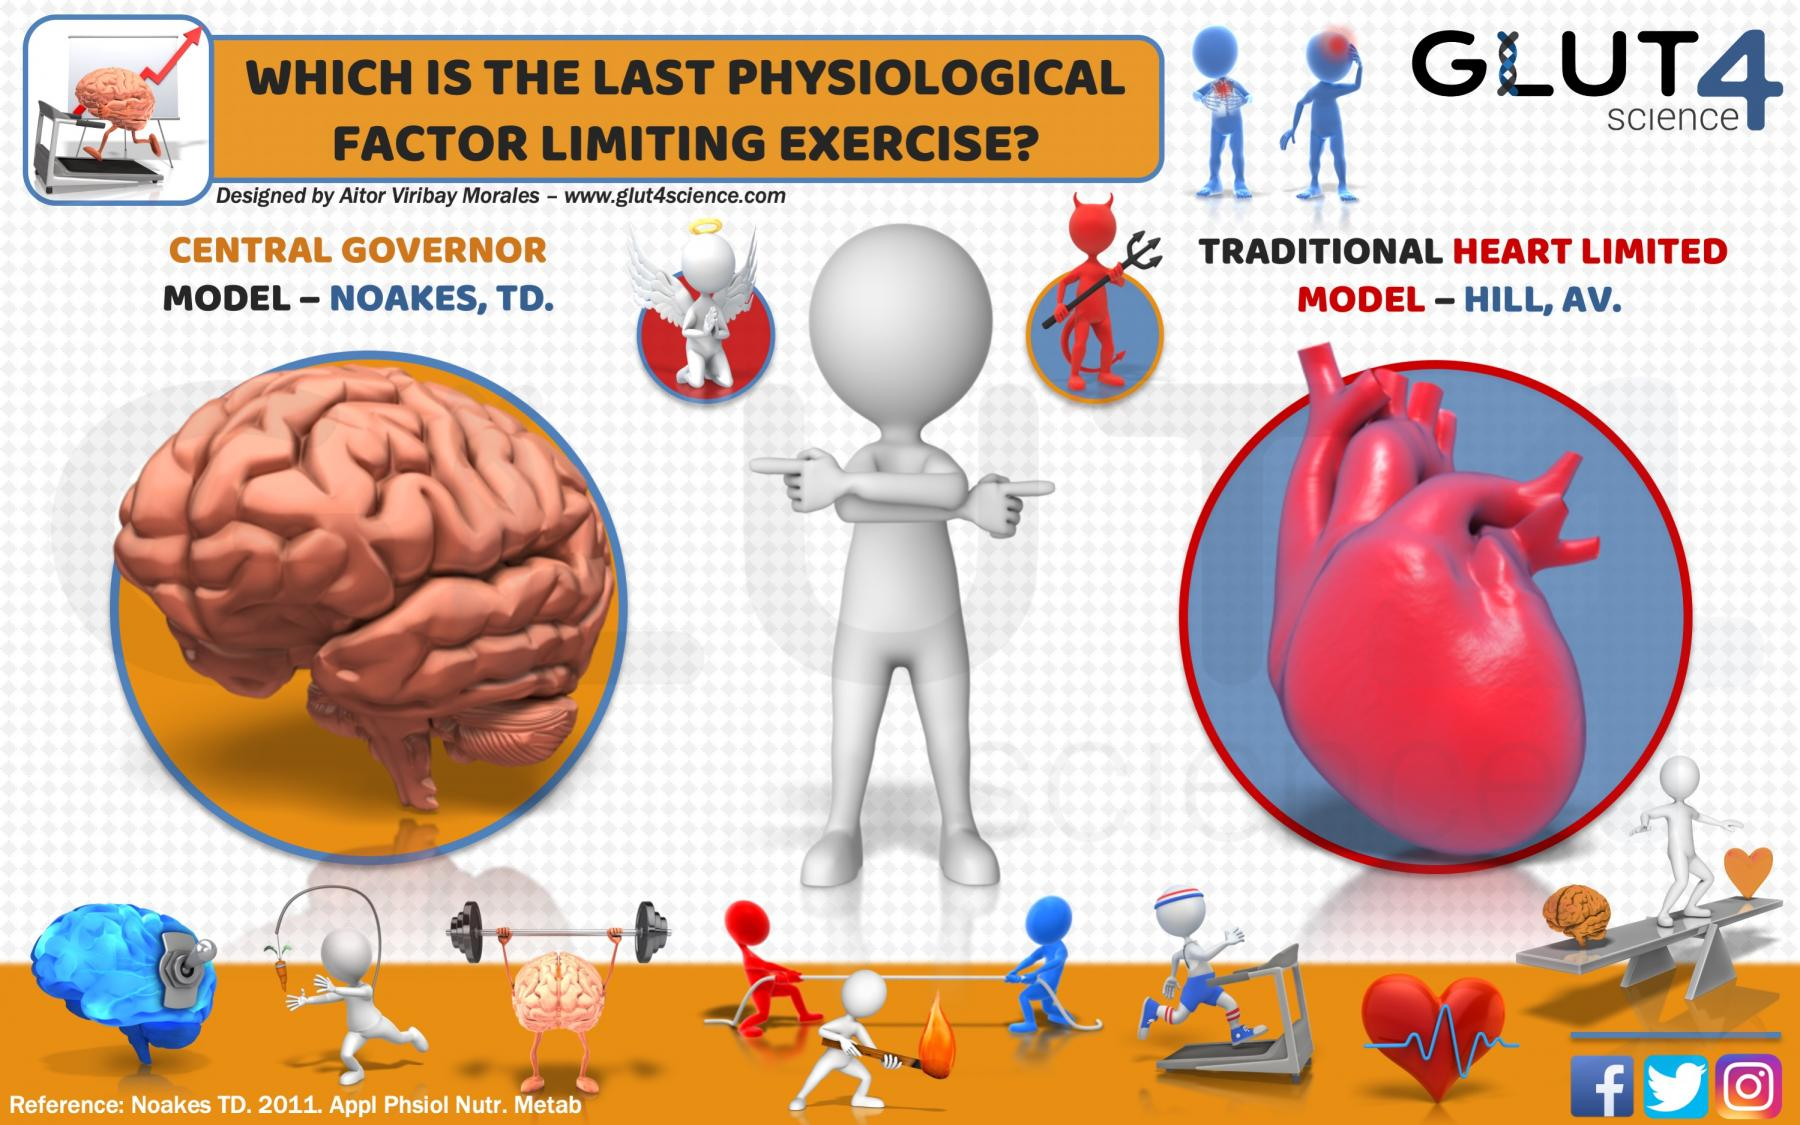 Which is the last physiological exercise-limiting factor?